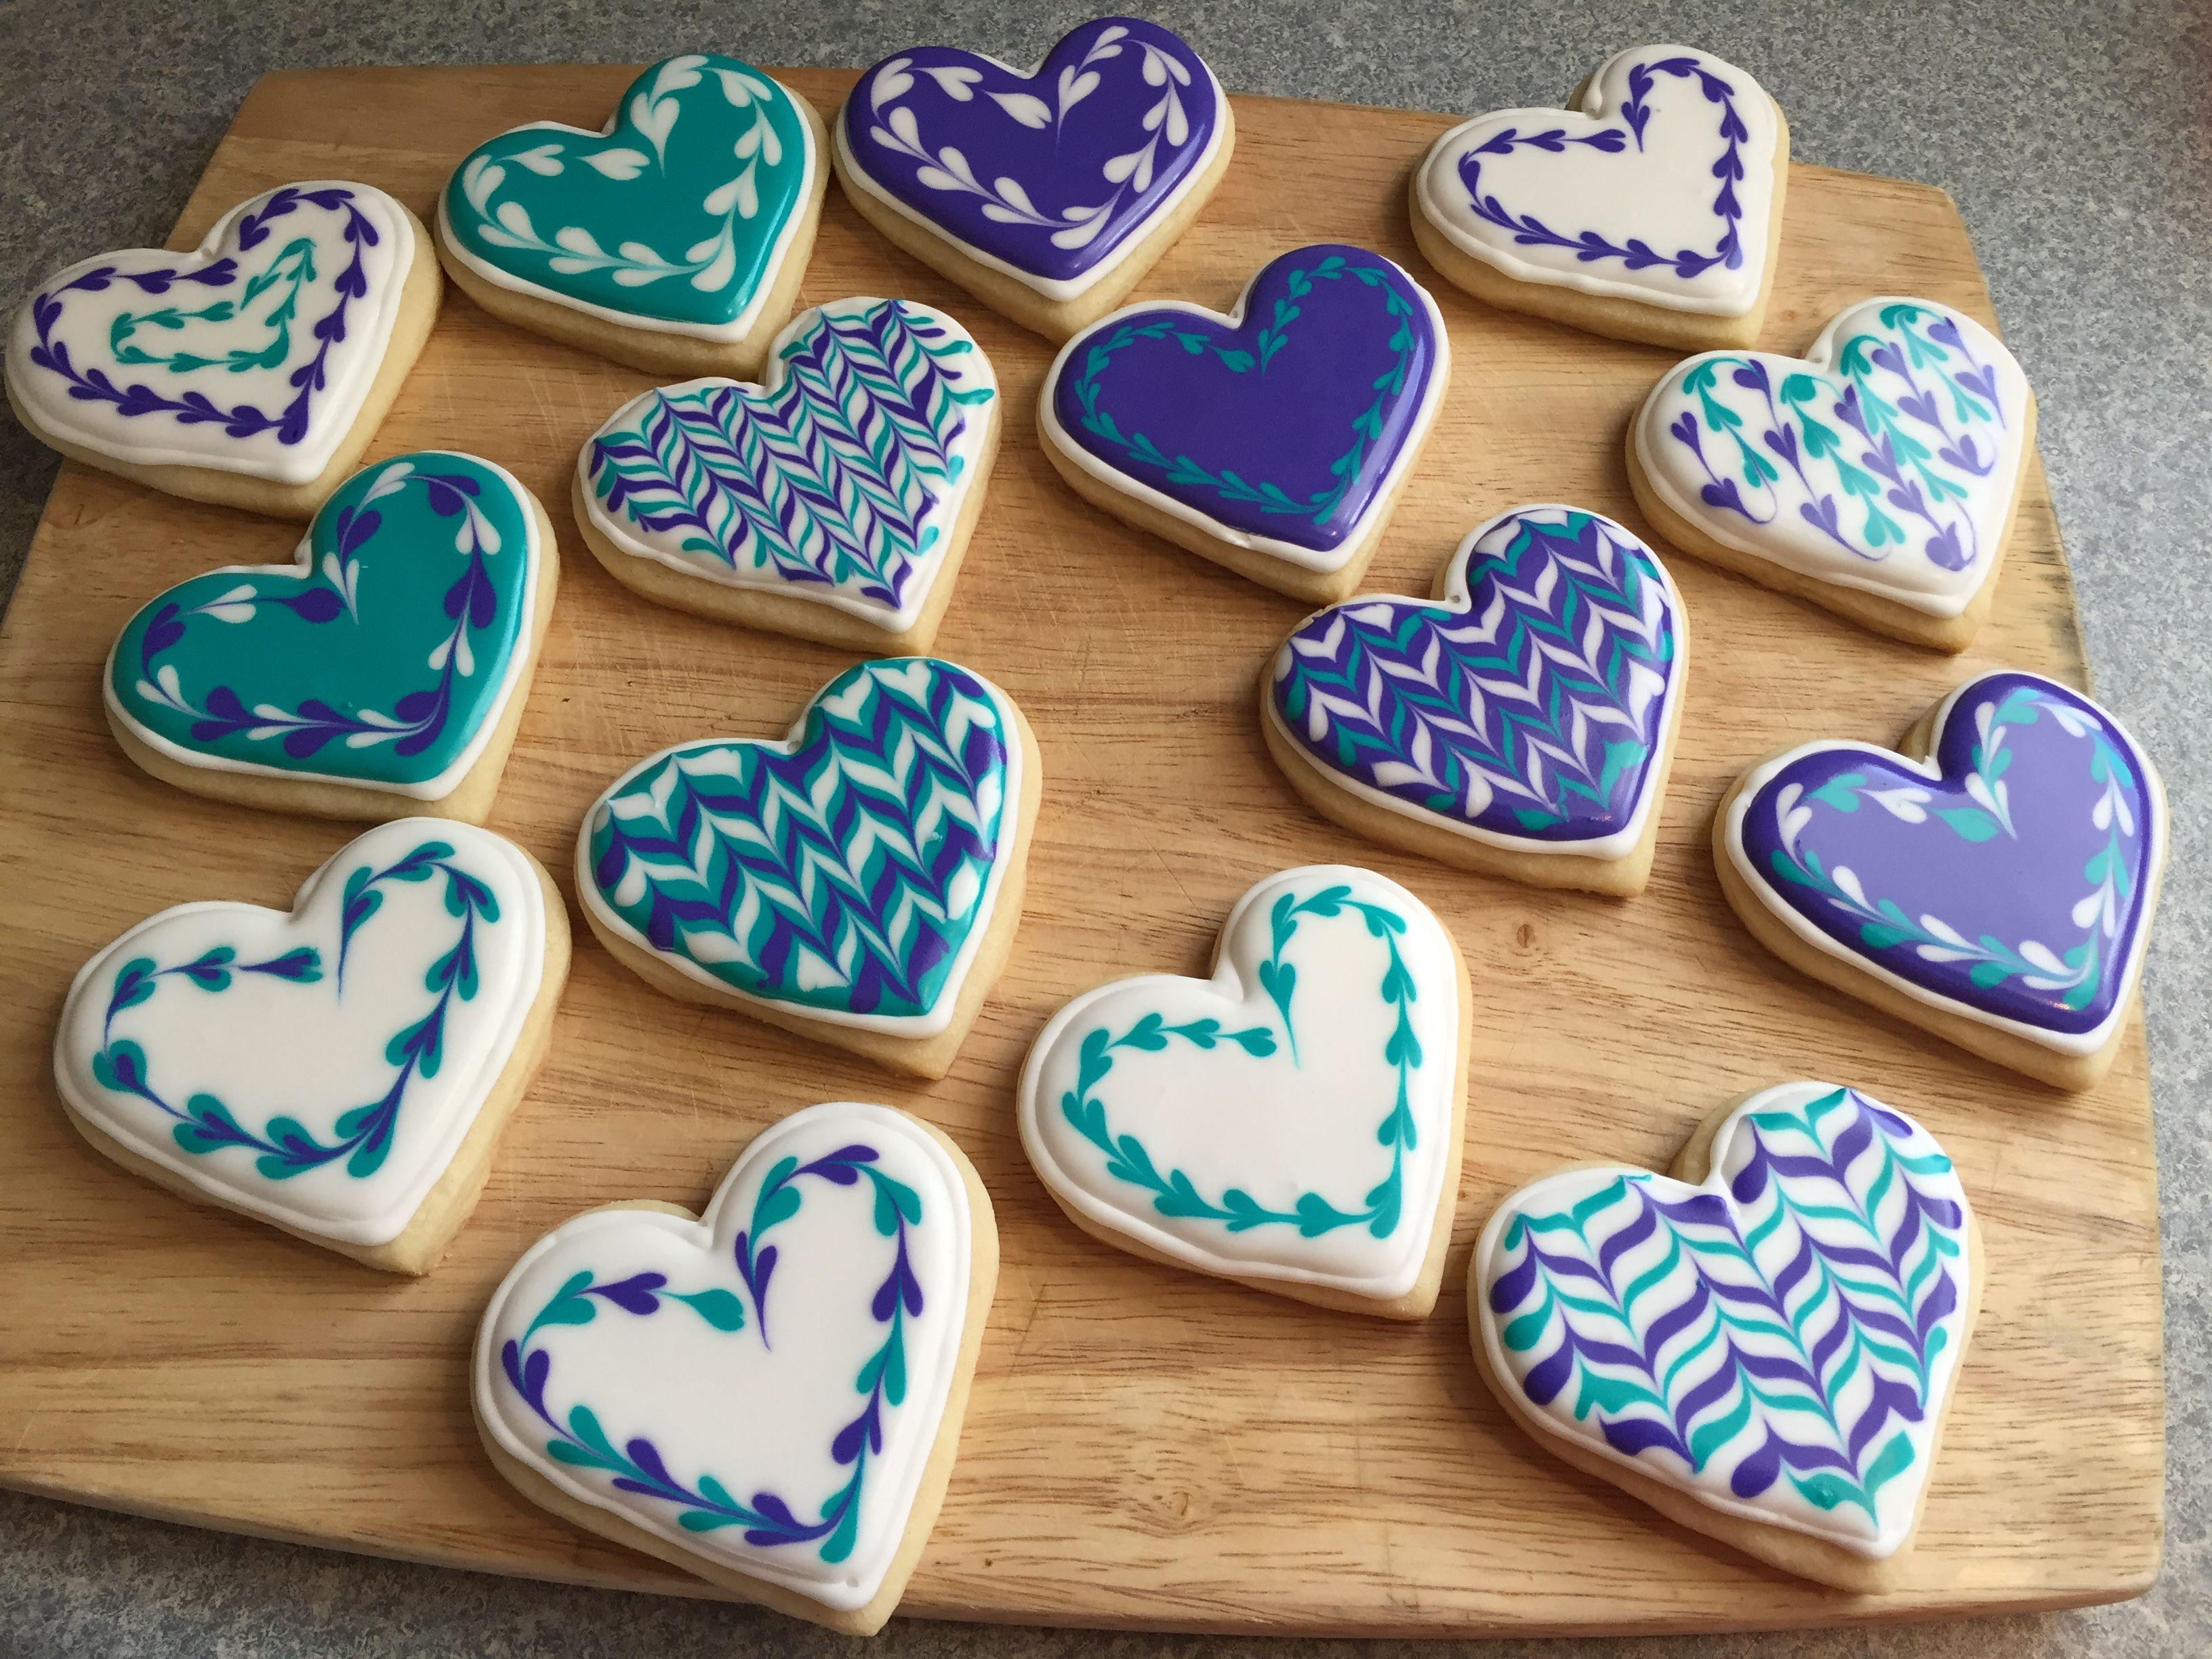 Wet On Wet Royal Icing Technique On Sugar Cookies Perfect